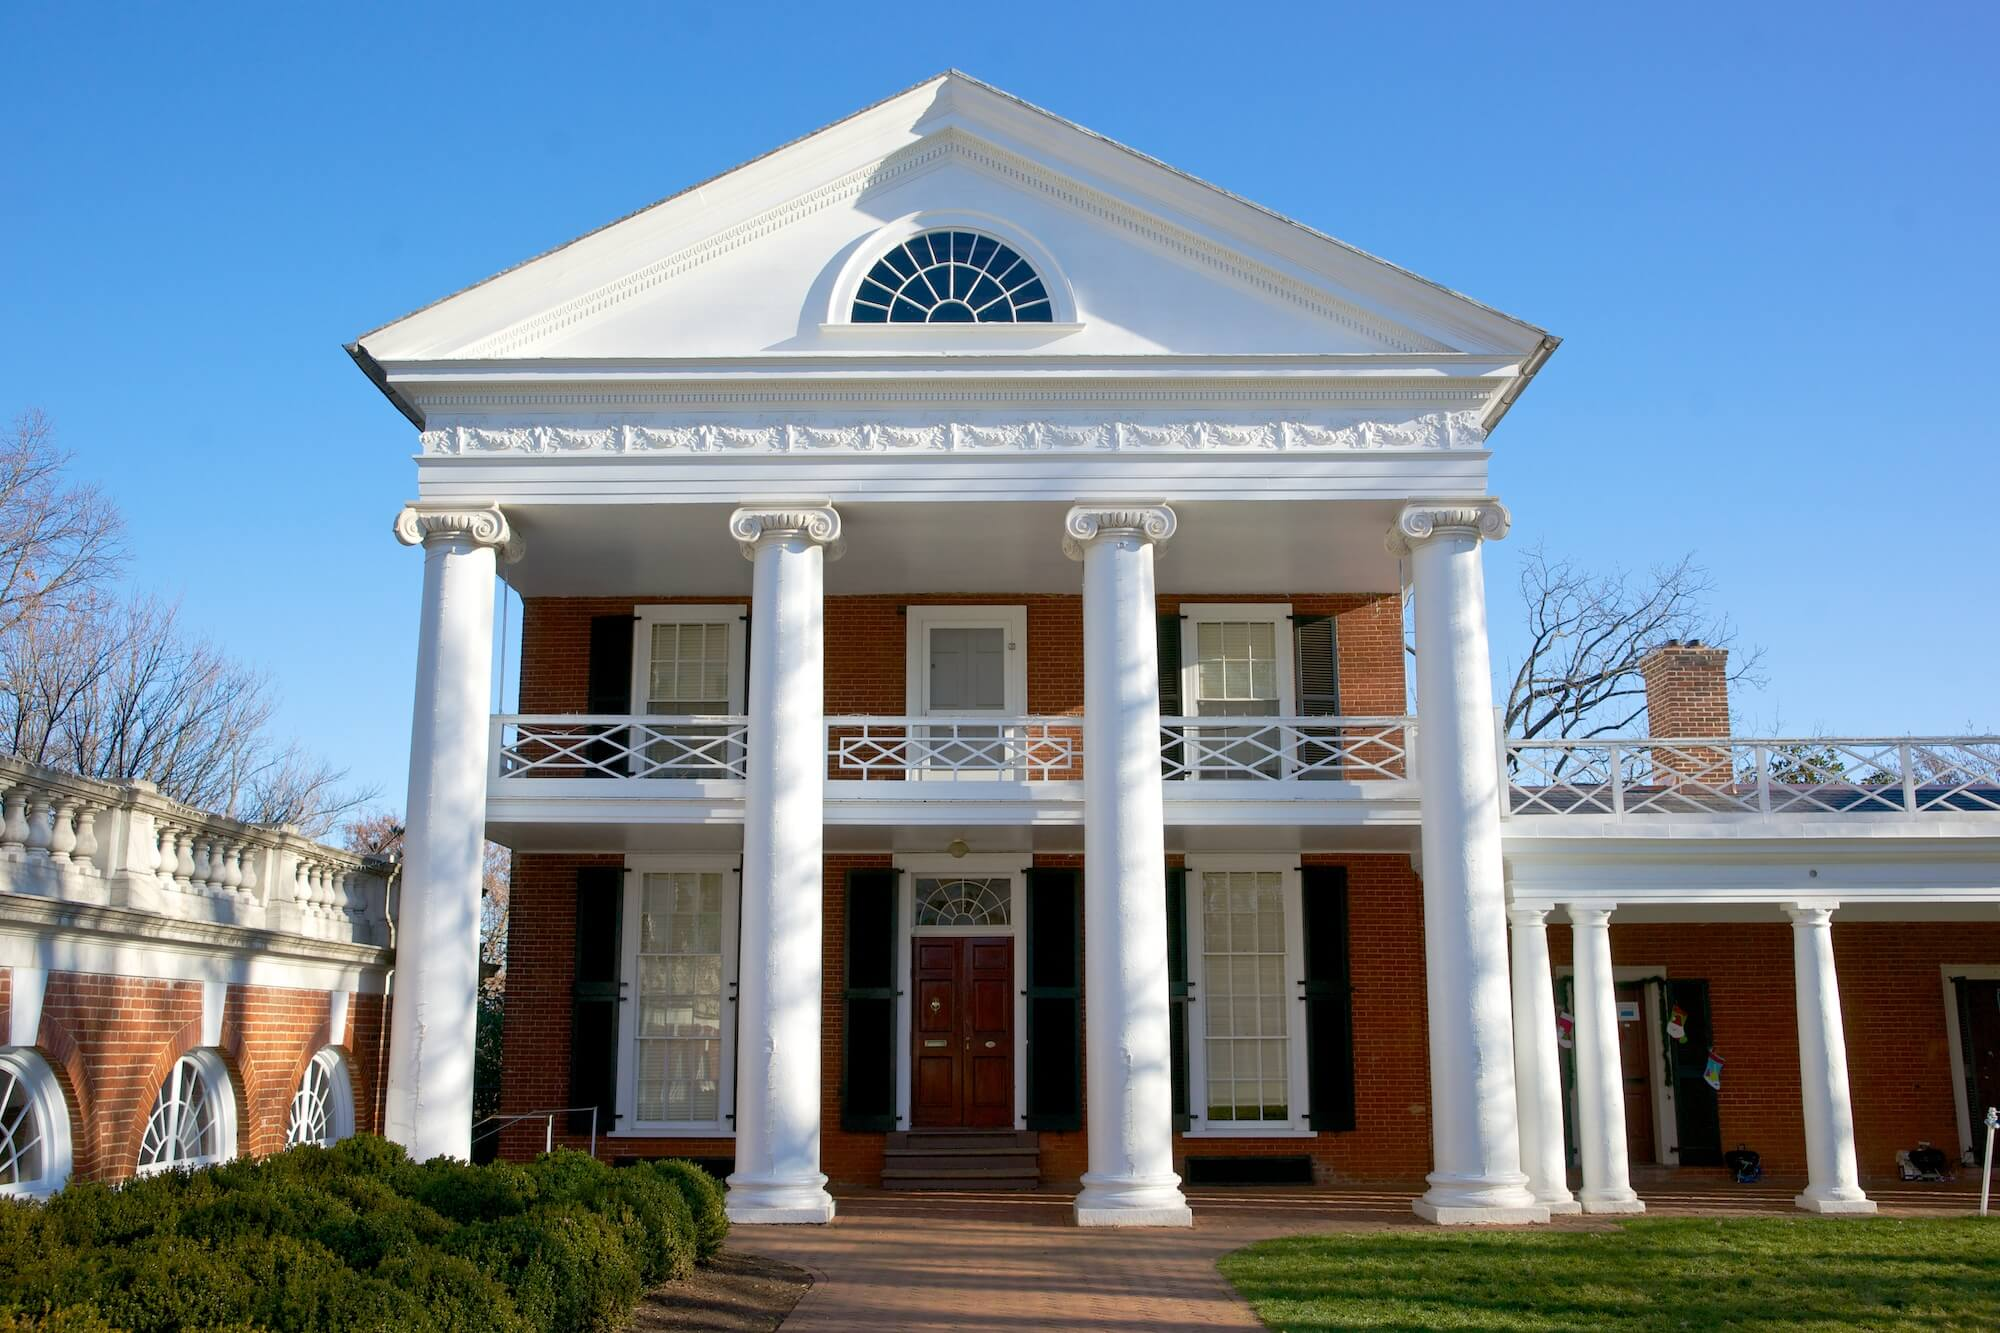 PAVILION II at UVA. © https://vironevaeh.com/tag/uva/